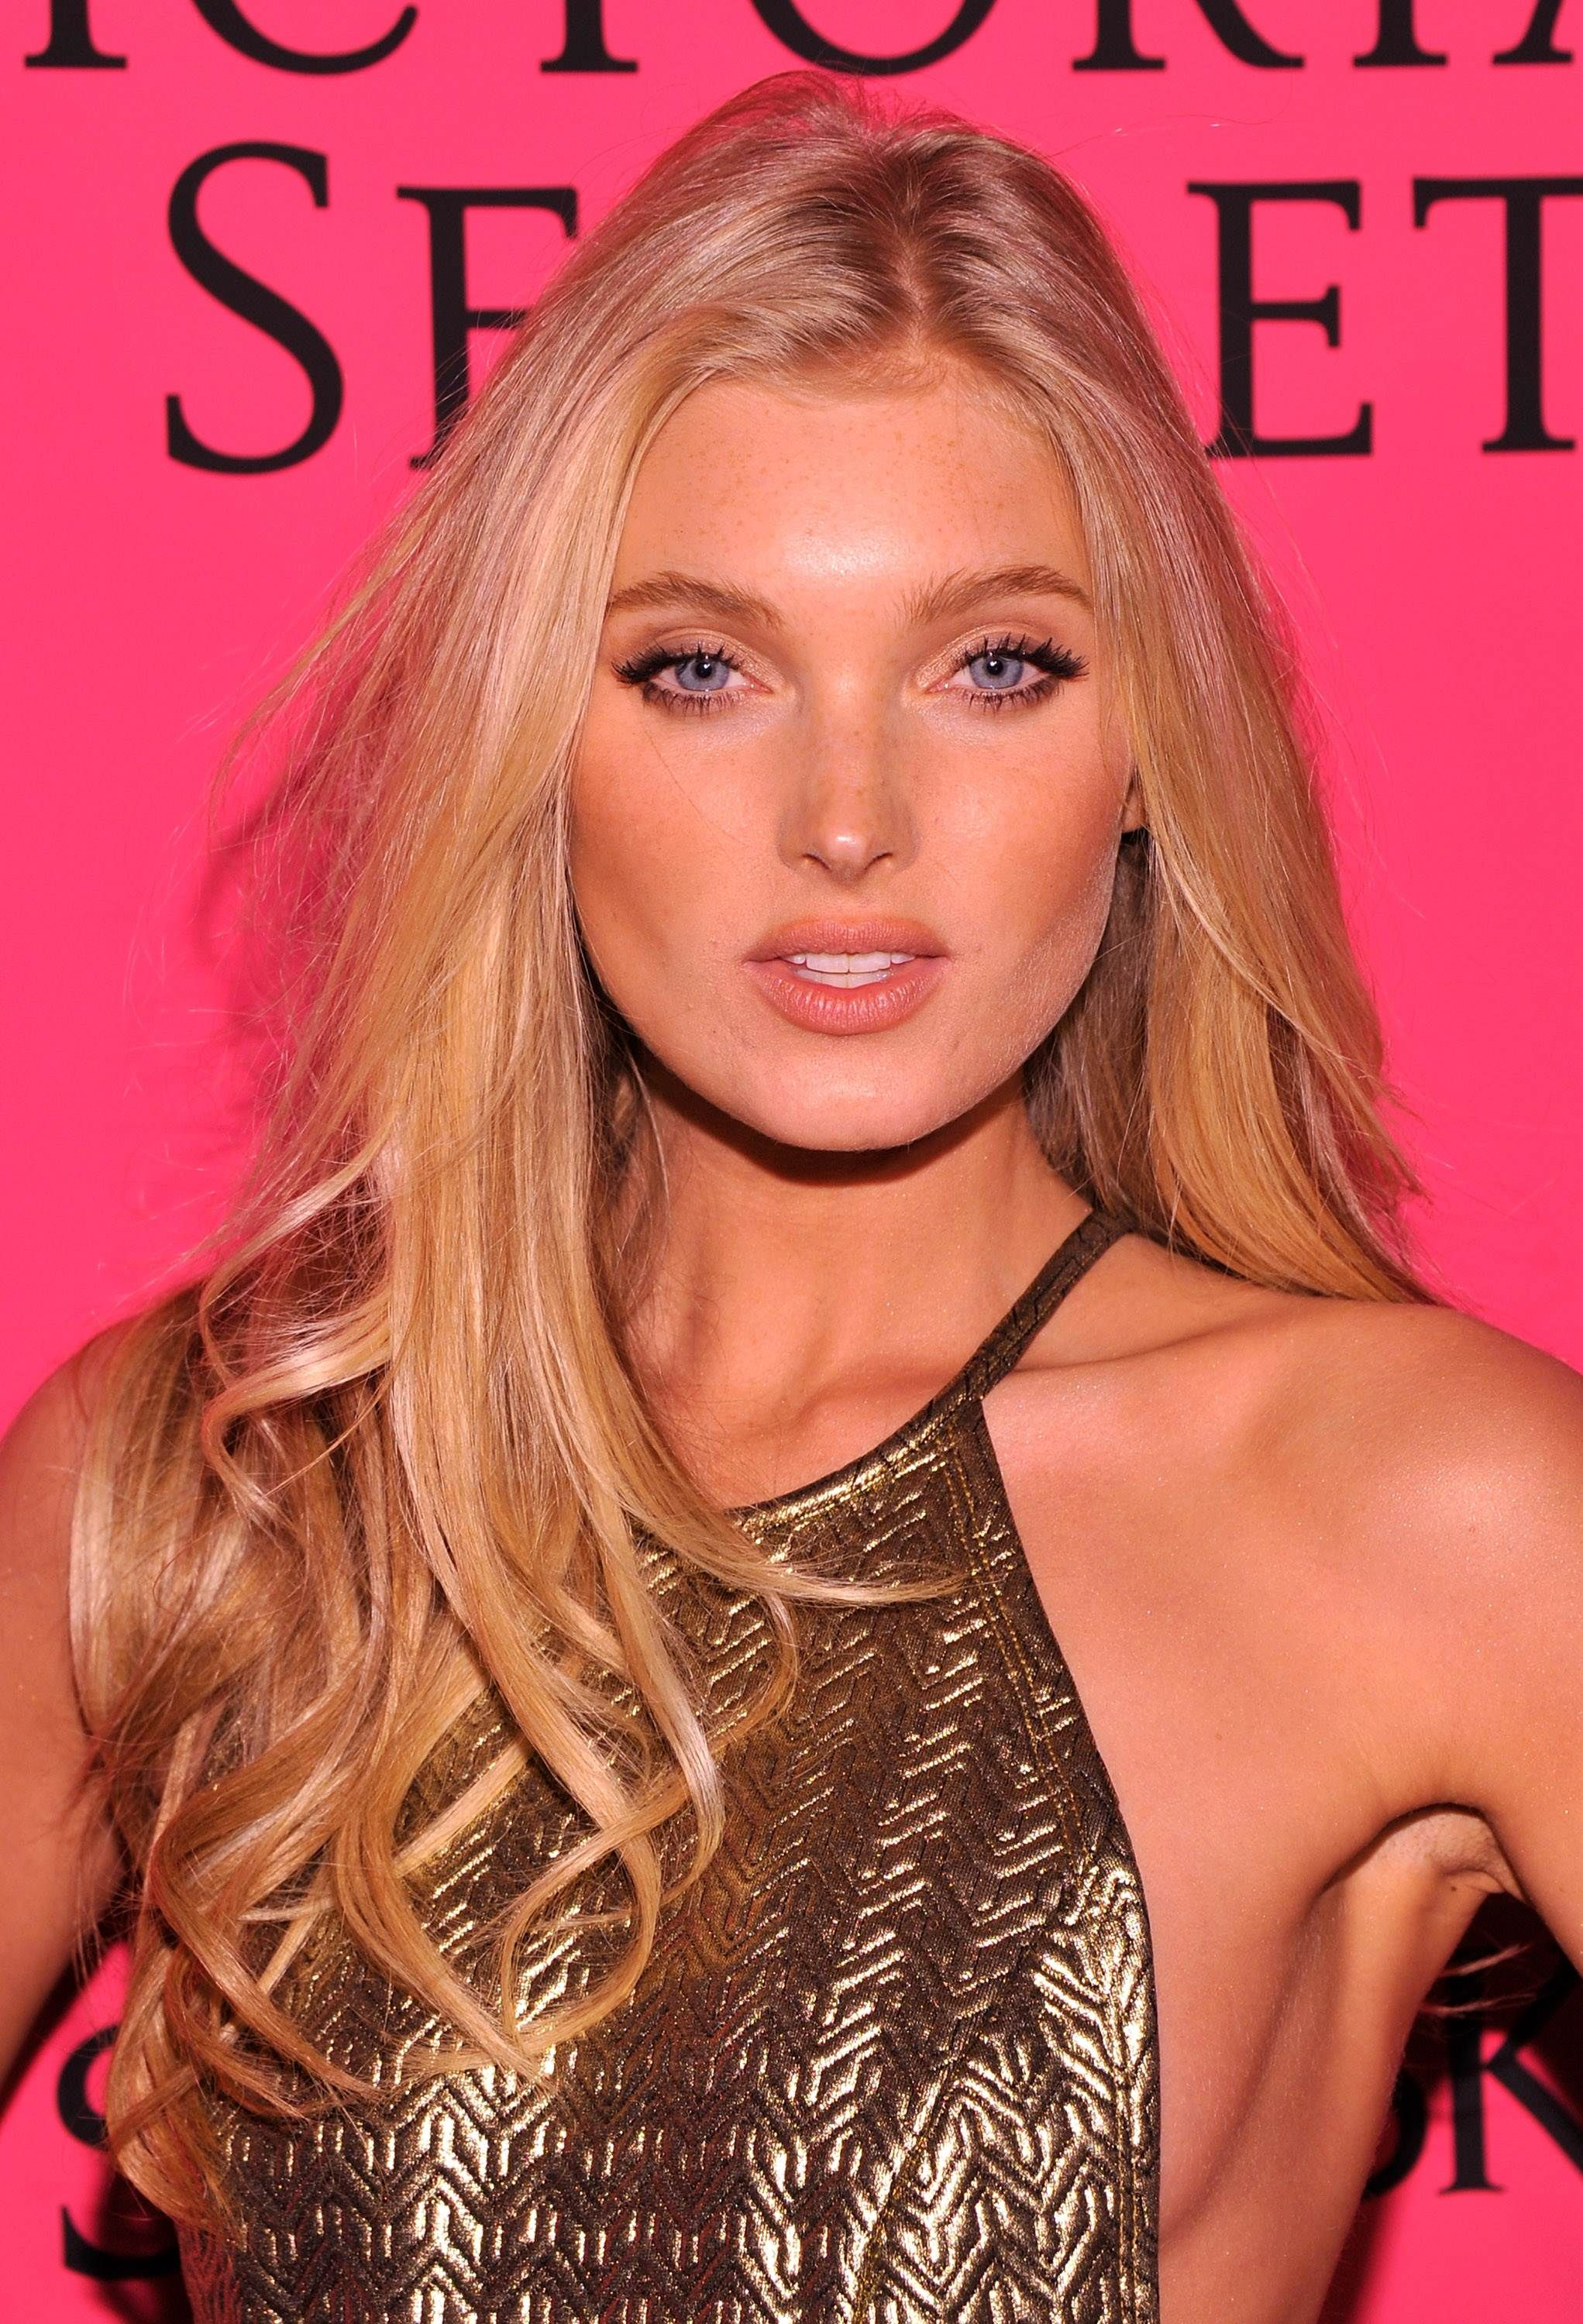 Elsa hosk hair and makeup beauty pinterest elsa hosk and makeup elsa hosk hair and makeup baditri Image collections